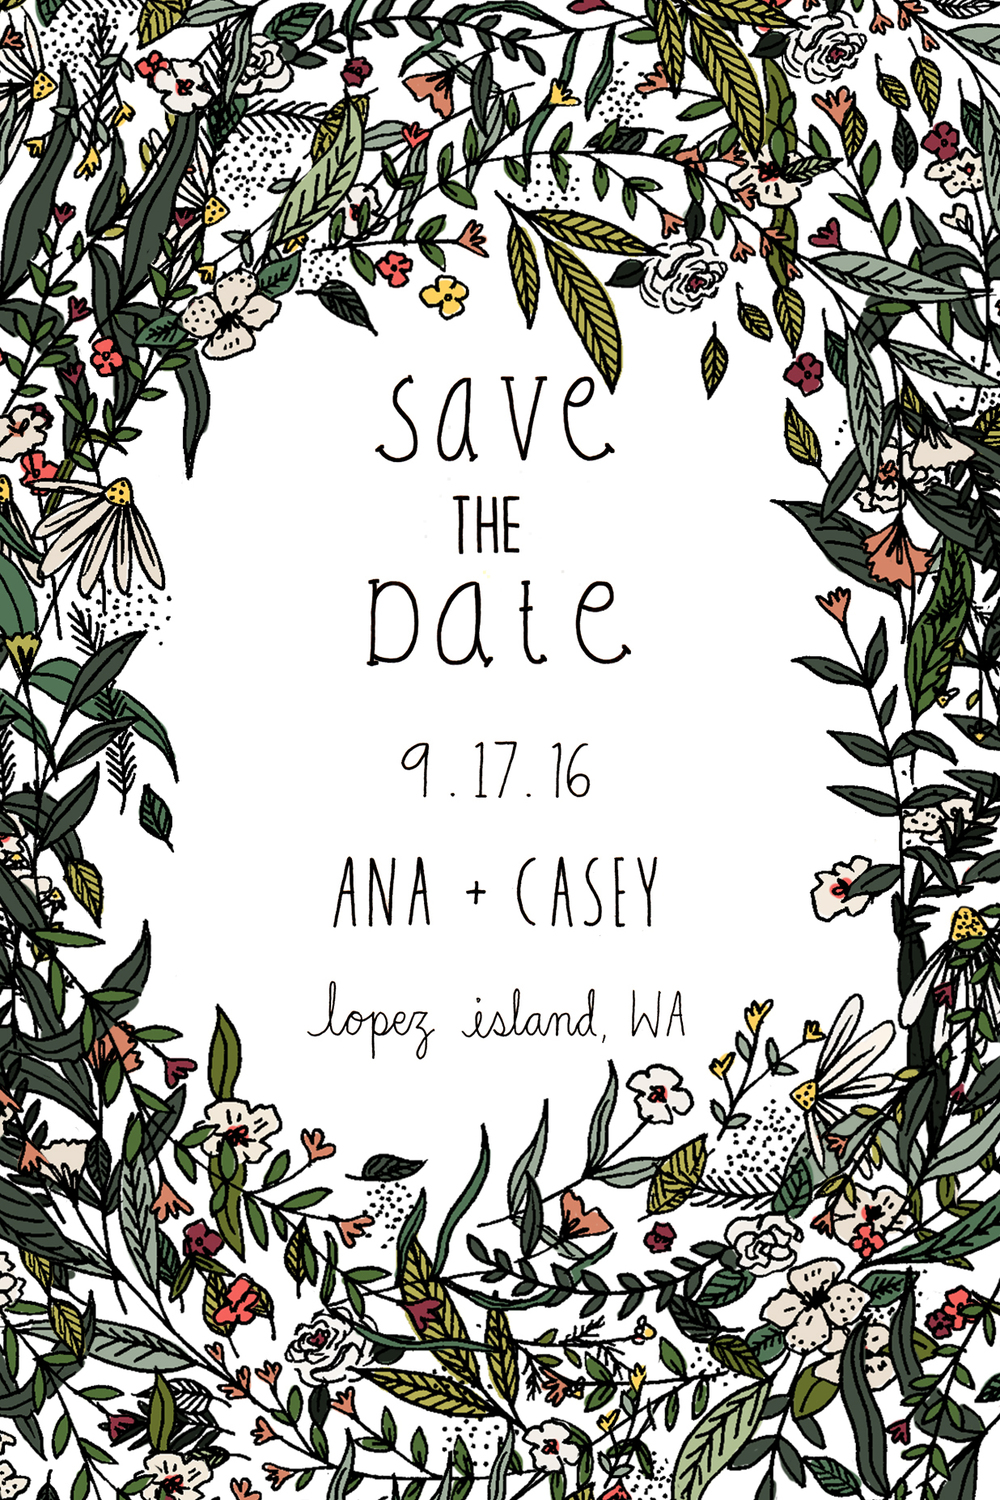 Save the Date, 2016